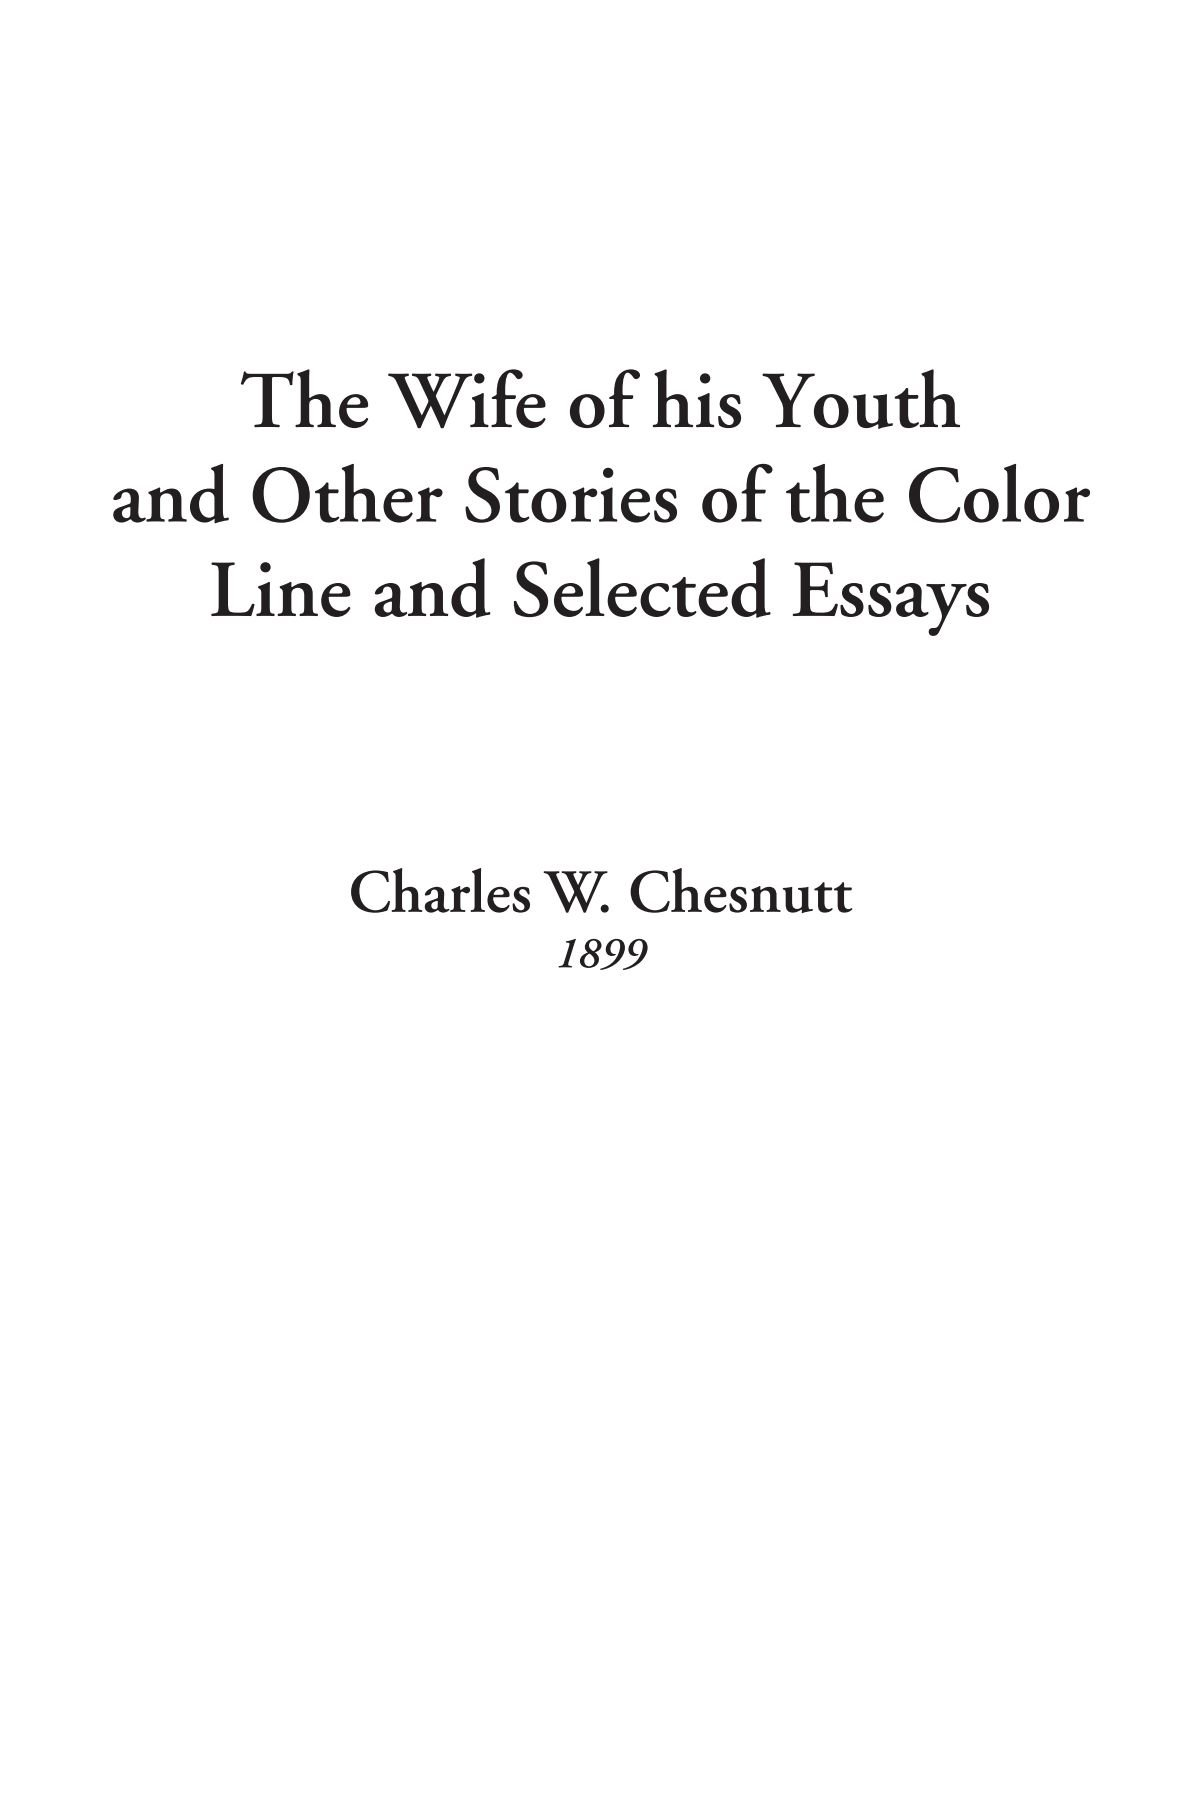 Download The Wife of his Youth and Other Stories of the Color Line and Selected Essays PDF ePub fb2 ebook